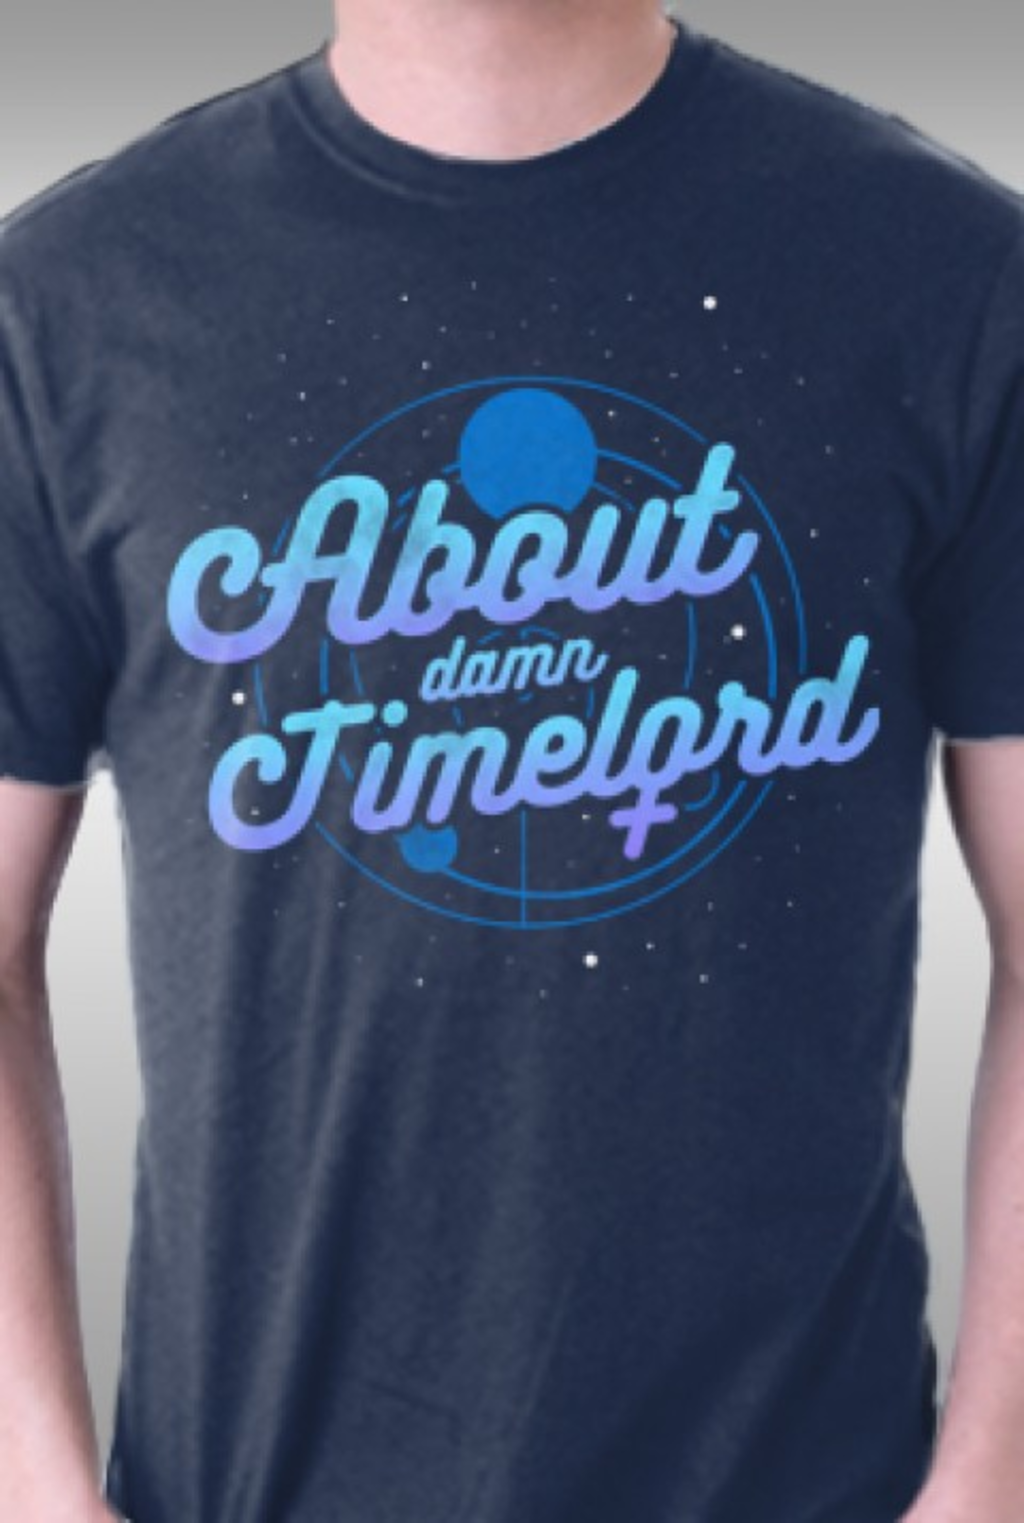 TeeFury: About Damn Timelord